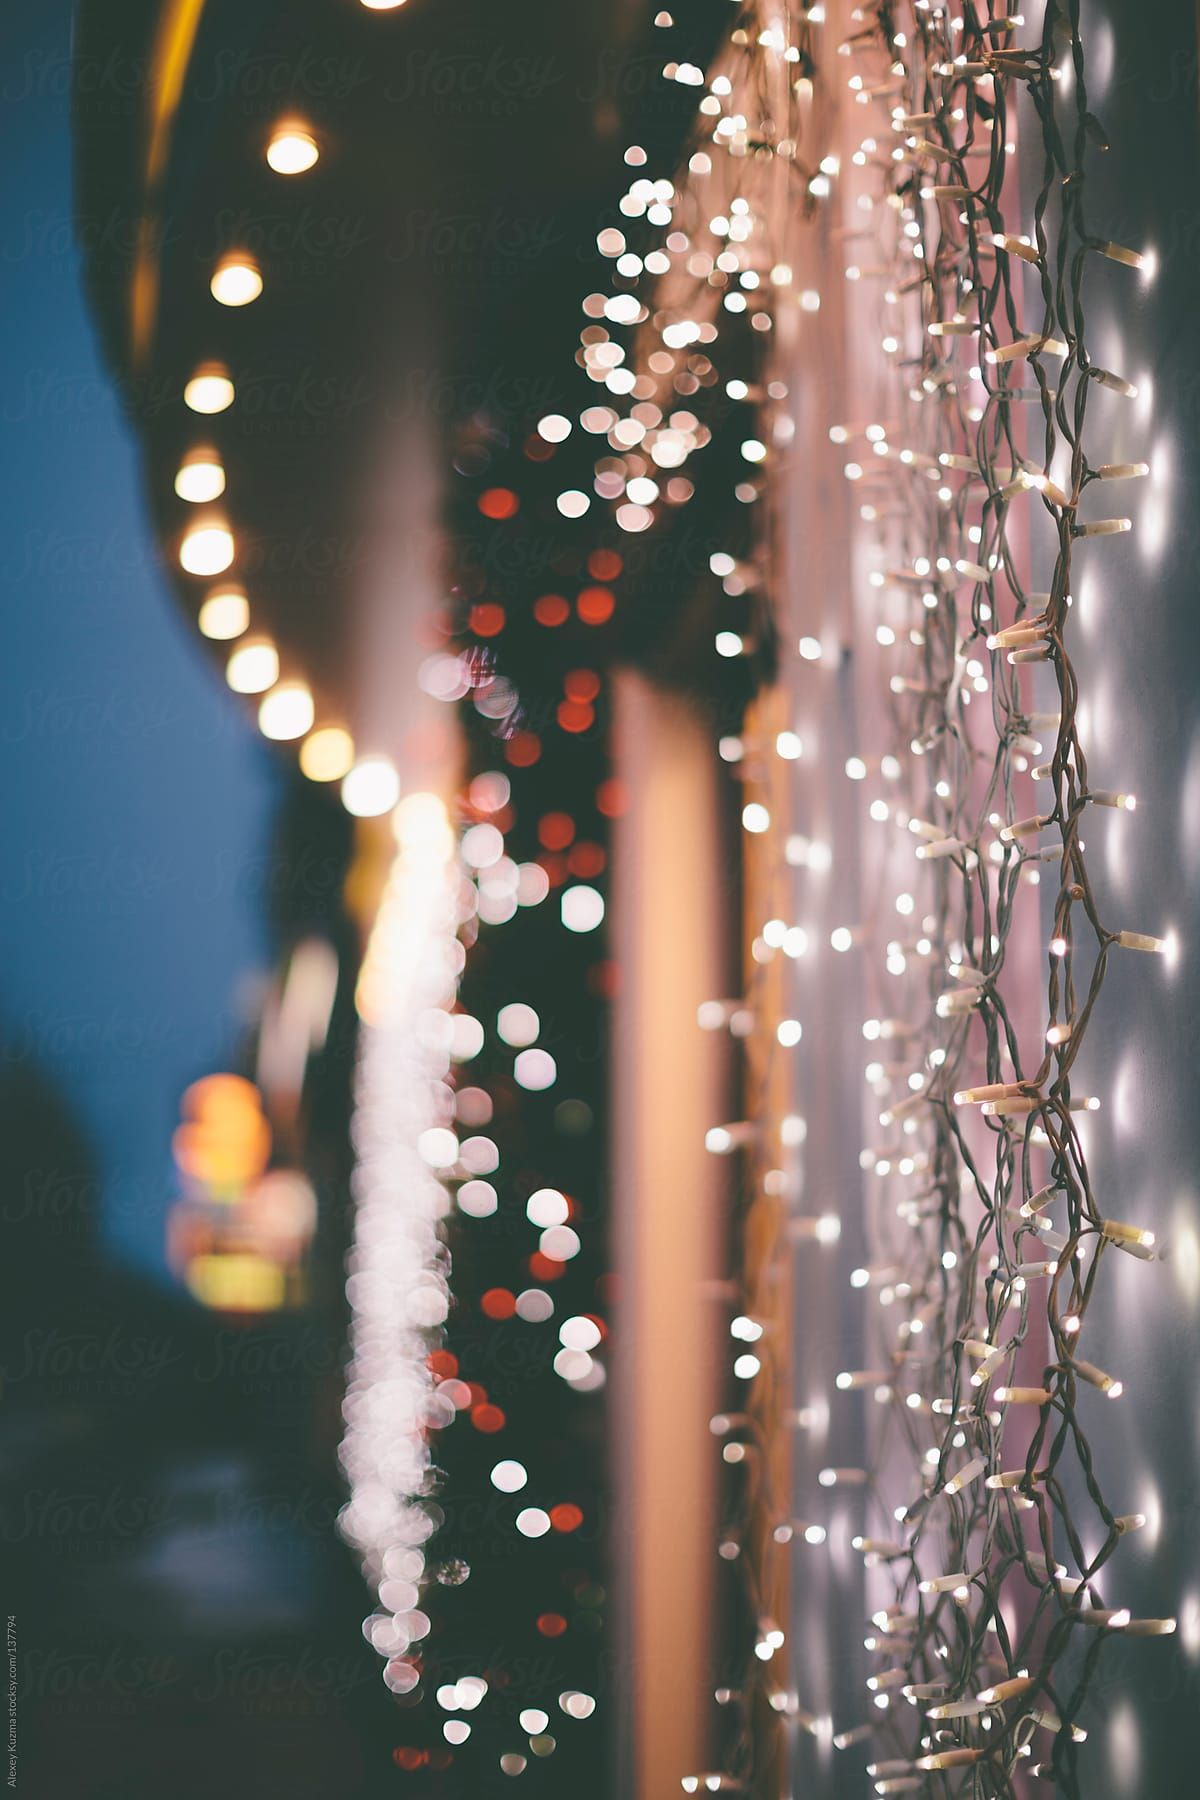 Christmas Lights Download This High Resolution Stock Photo By Alexey Ku Christmas Wallpaper Iphone Tumblr Wallpaper Iphone Christmas Christmas Lights Wallpaper